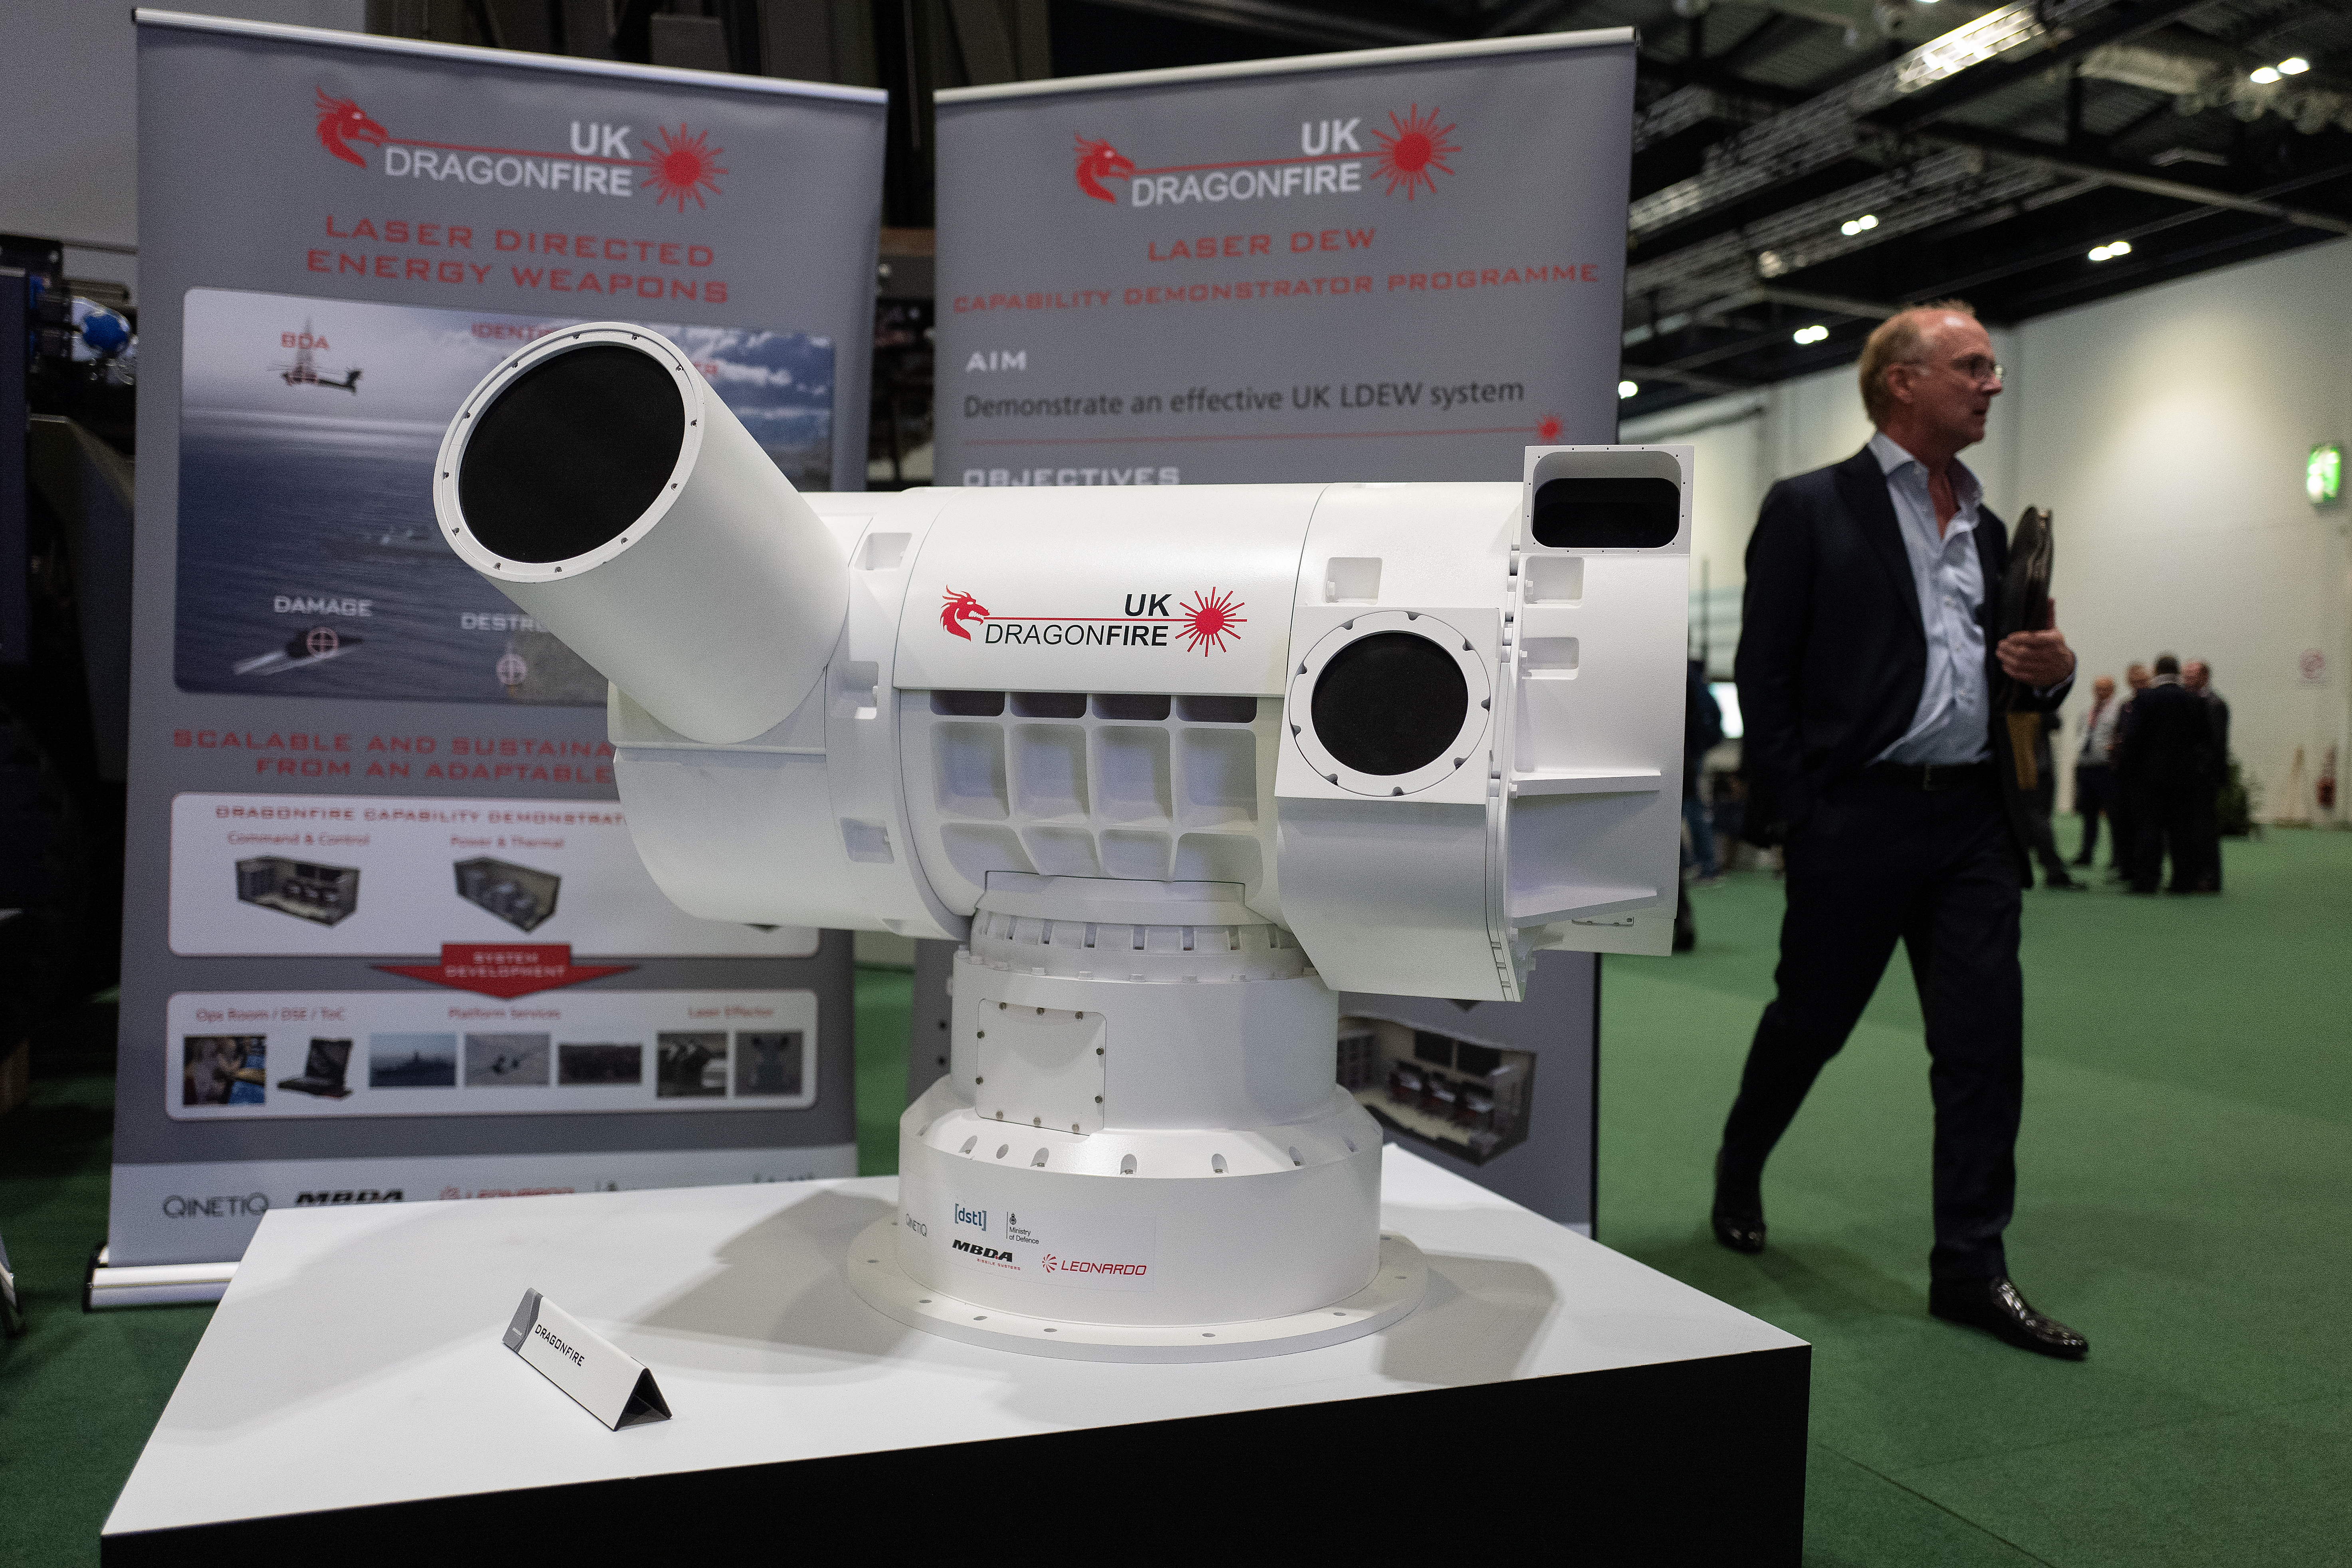 A U.K. Dragonfire laser-directed energy weapon is seen at the DSEI arms fair in London, England. (Leon Neal/Getty Images)